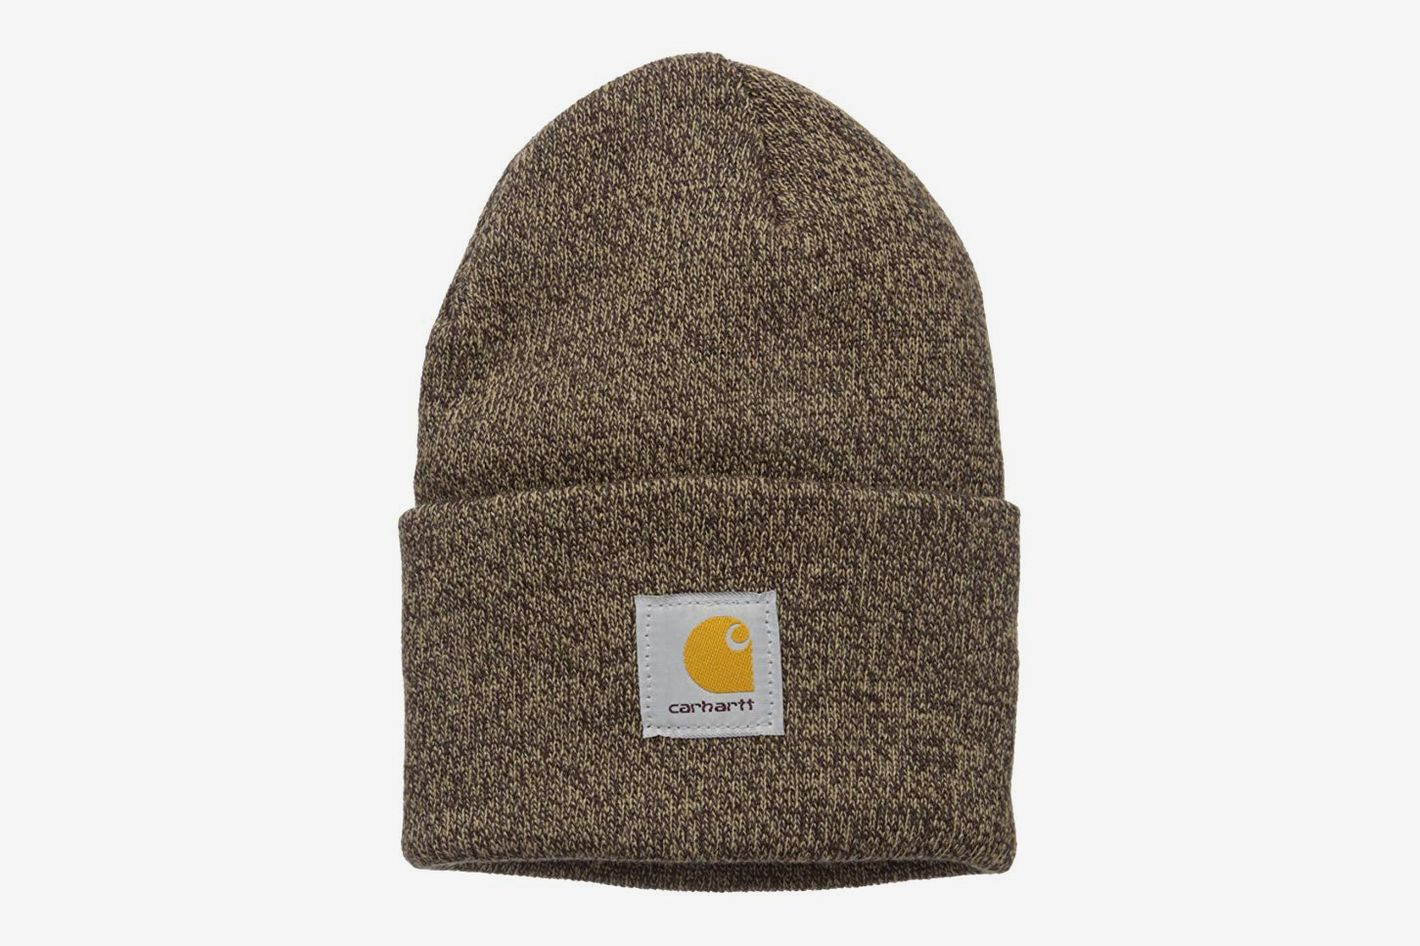 Carhartt Beanies Are Everywhere. Here s Why. 0e4a797137e